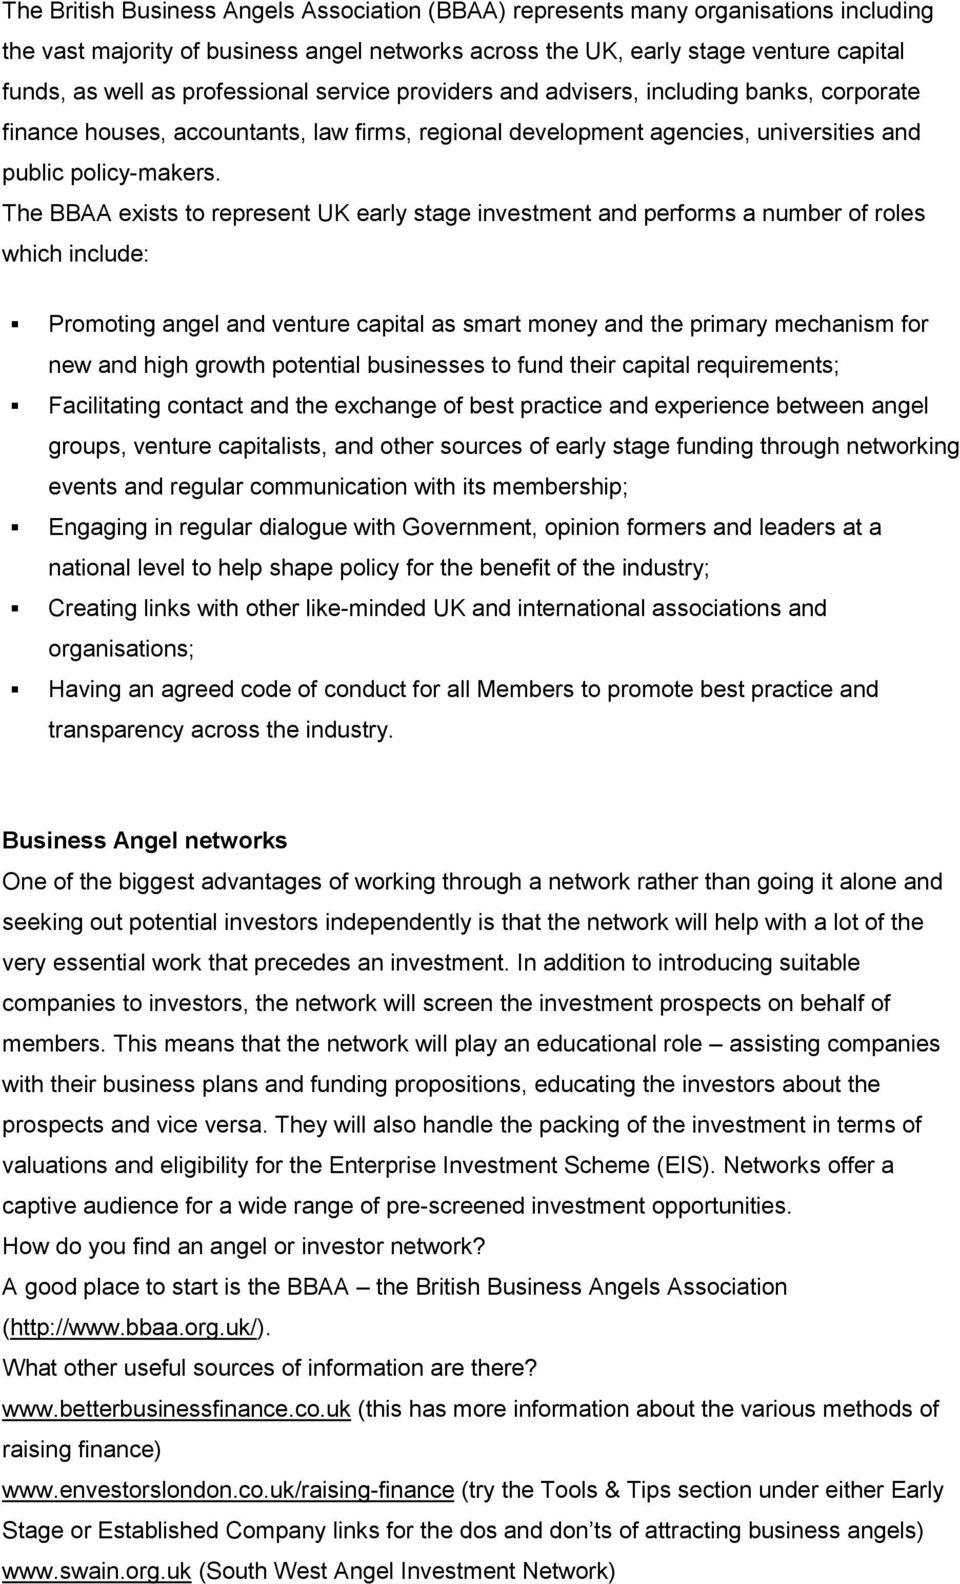 The BBAA exists to represent UK early stage investment and performs a number of roles which include: Promoting angel and venture capital as smart money and the primary mechanism for new and high